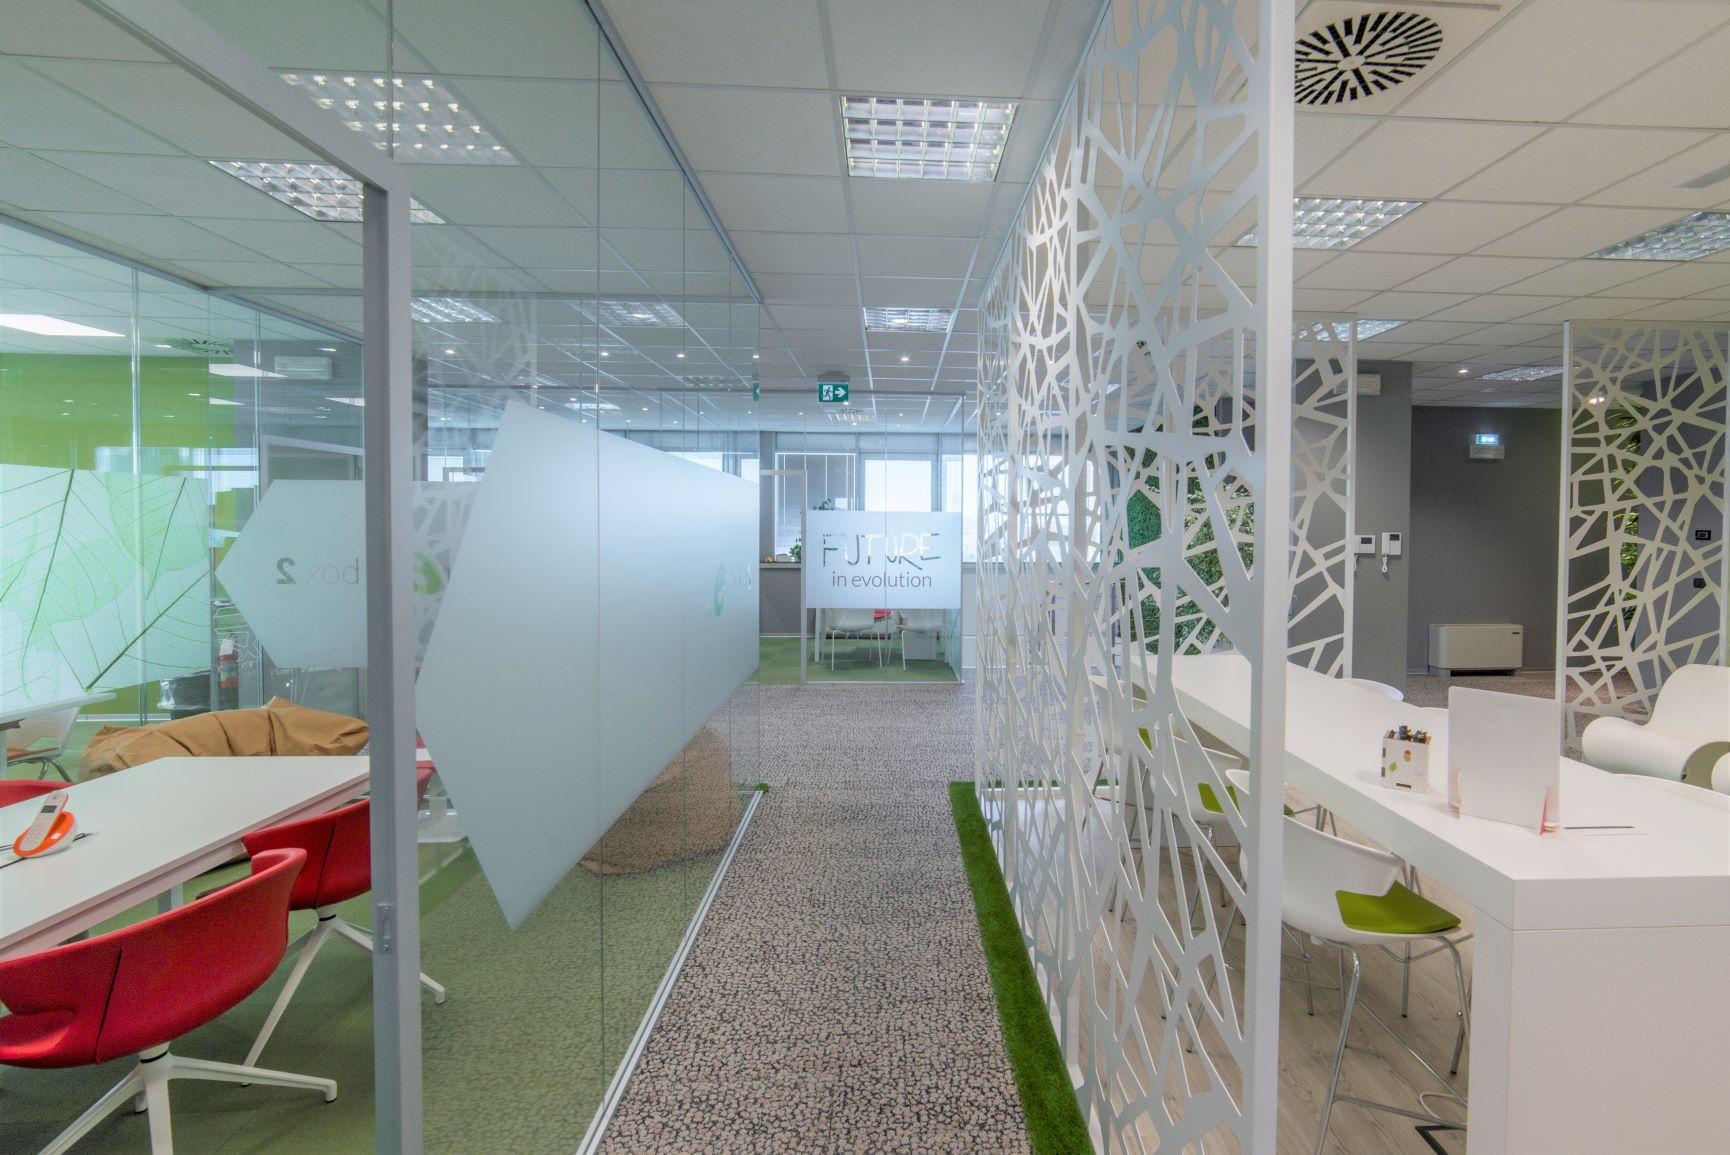 City coworkingarden - Coworking 4 by eis